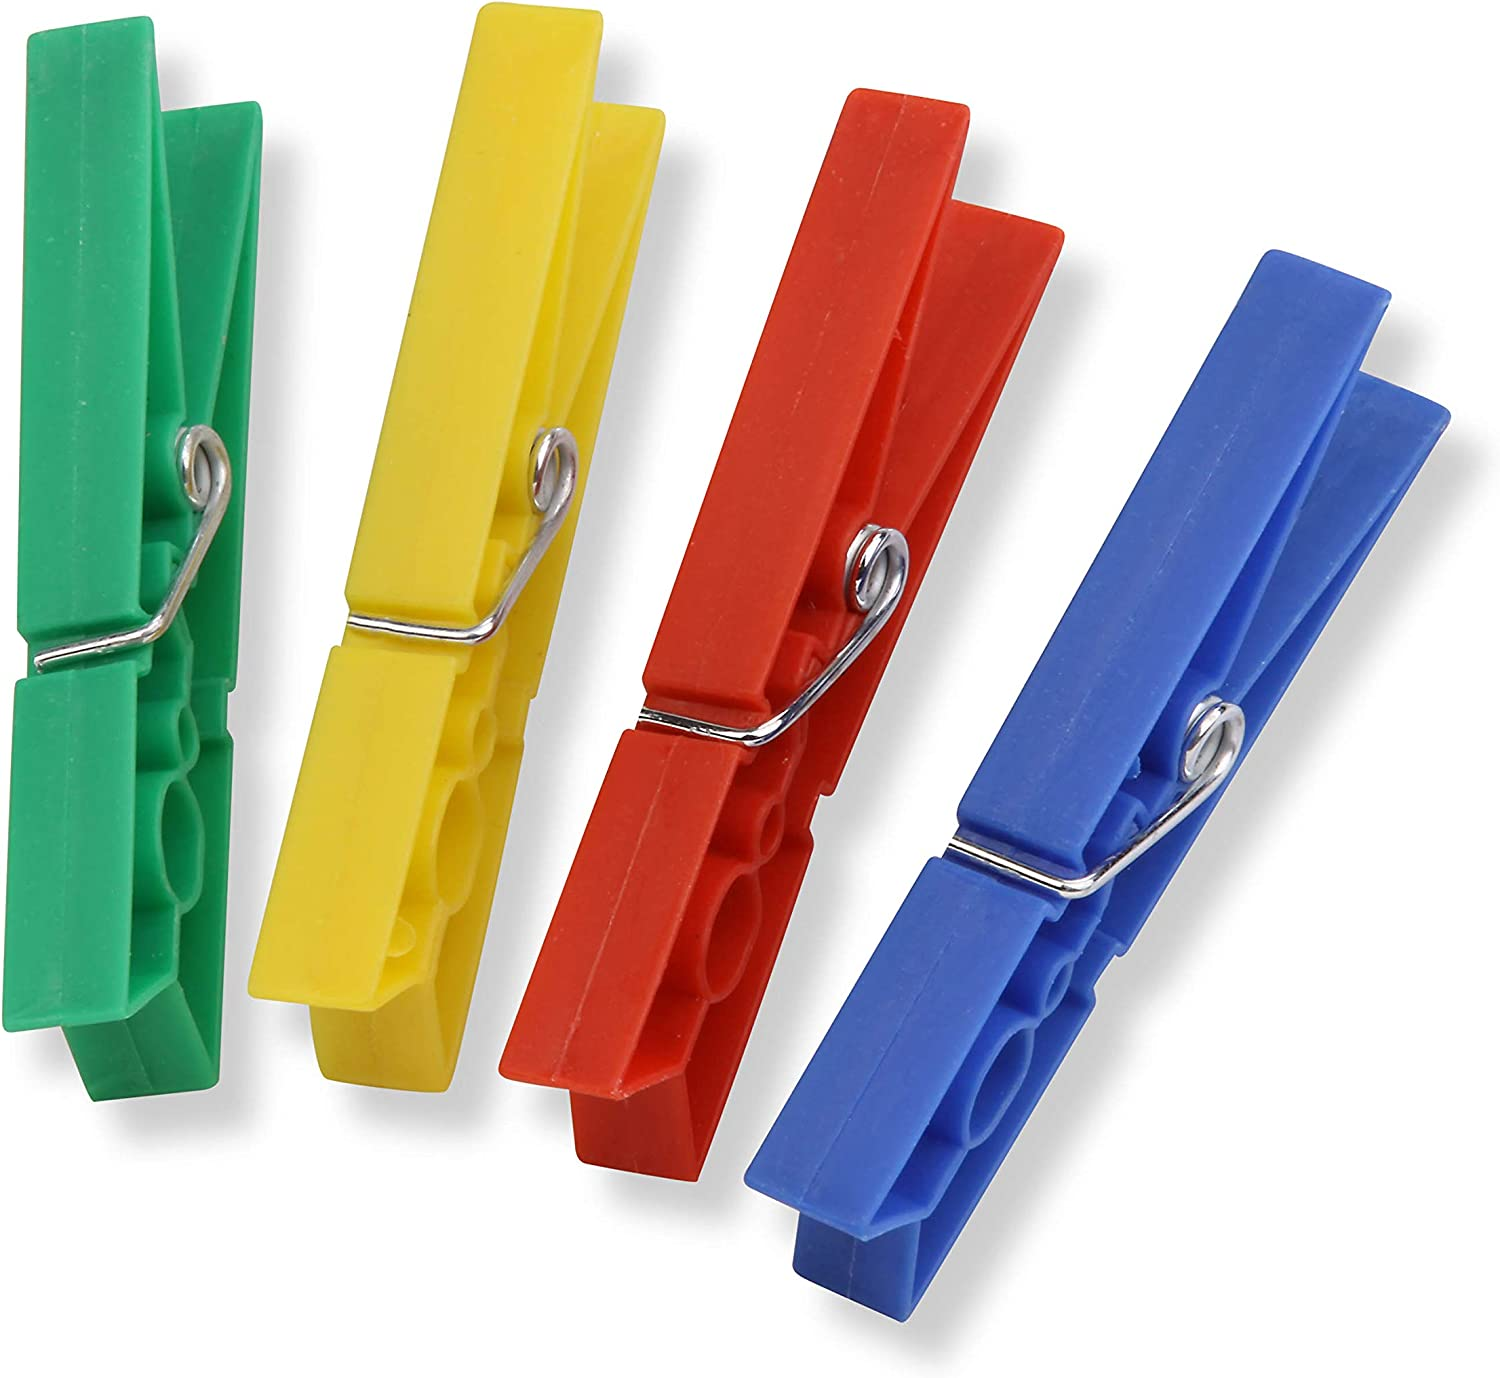 Max 54% OFF Brand Cheap Sale Venue Honey-Can-Do Colored Plastic Clothespins 100-Pack